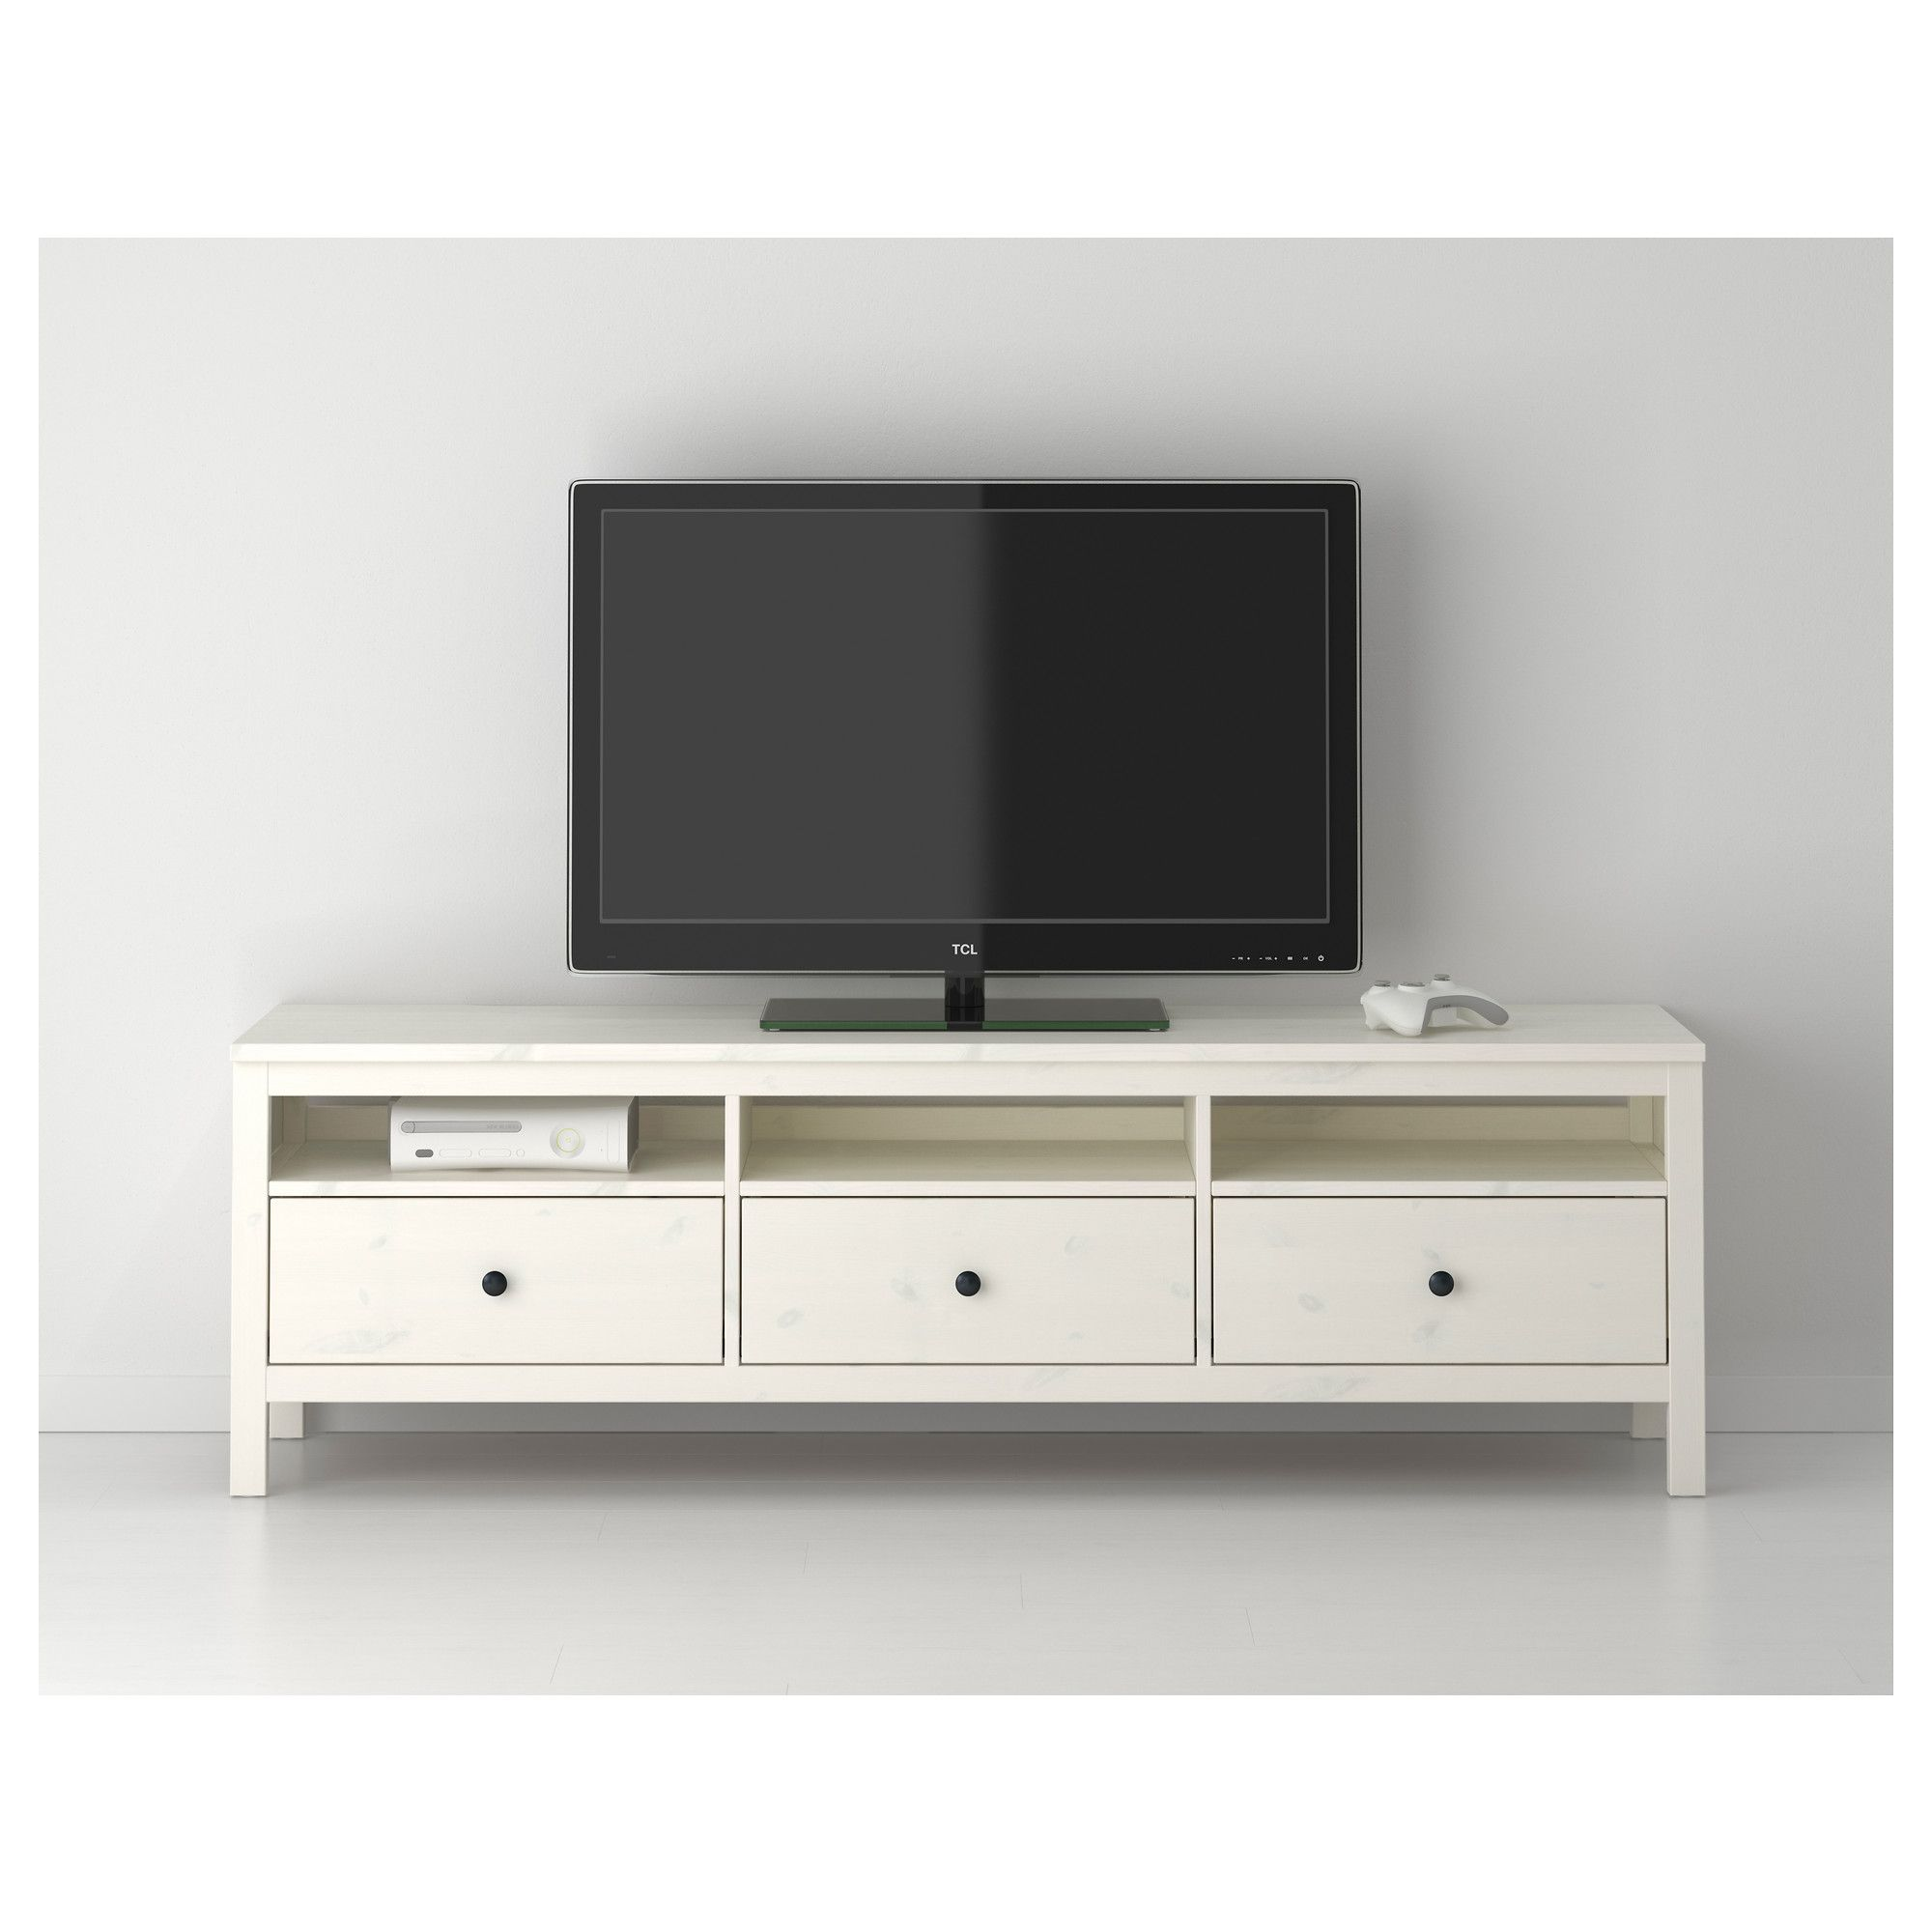 Hemnes tv ikea redecoration pinterest - Ikea table tv ...